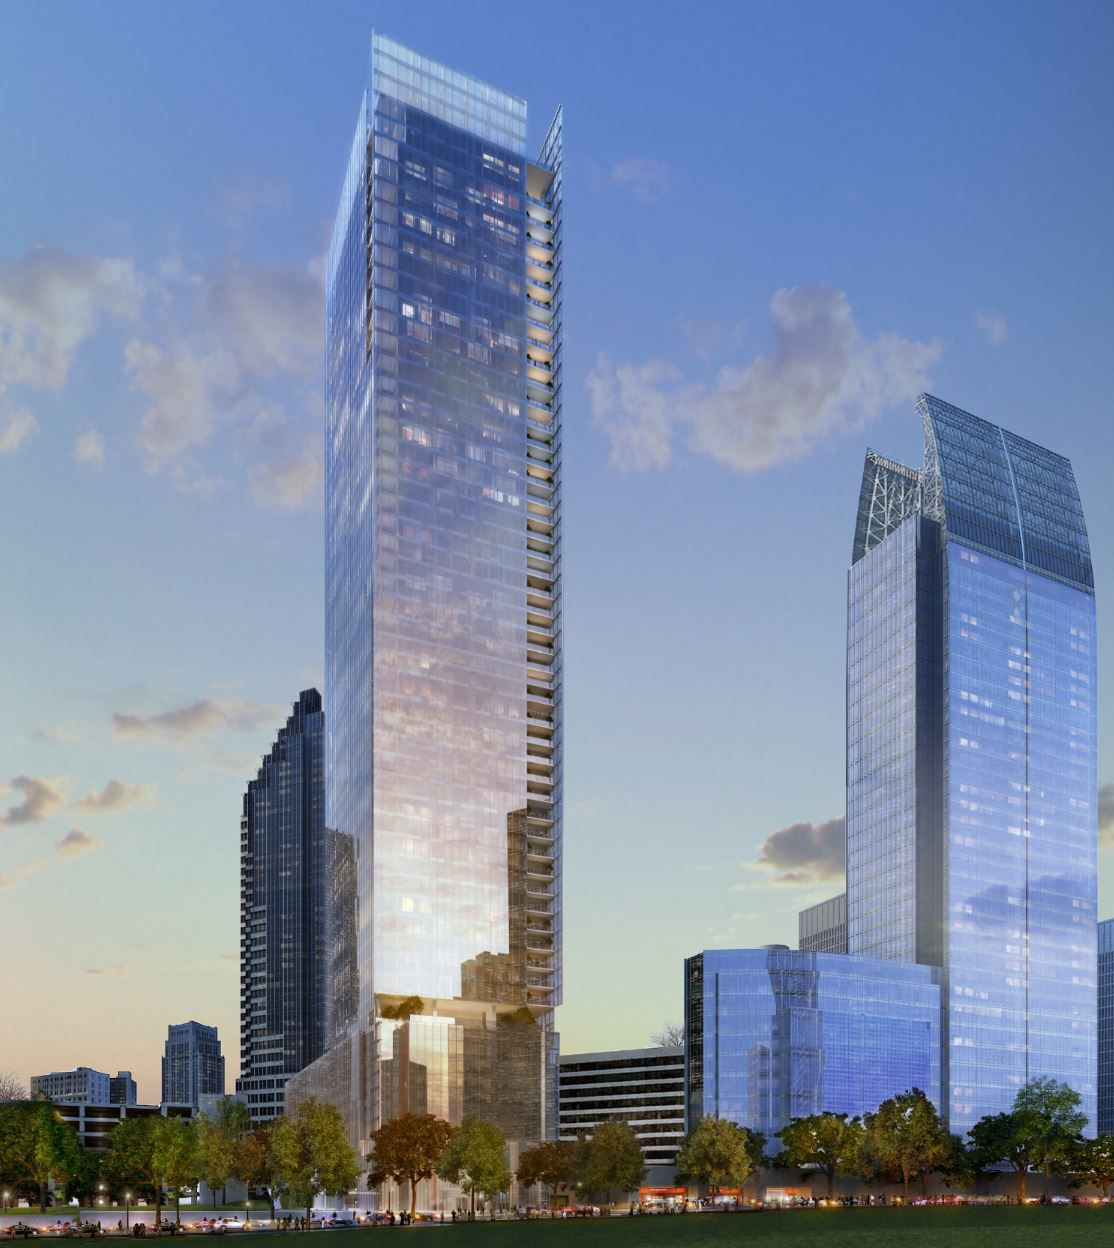 A rendering showing the all-glass 53-story tower next to the curving Symphony Tower.